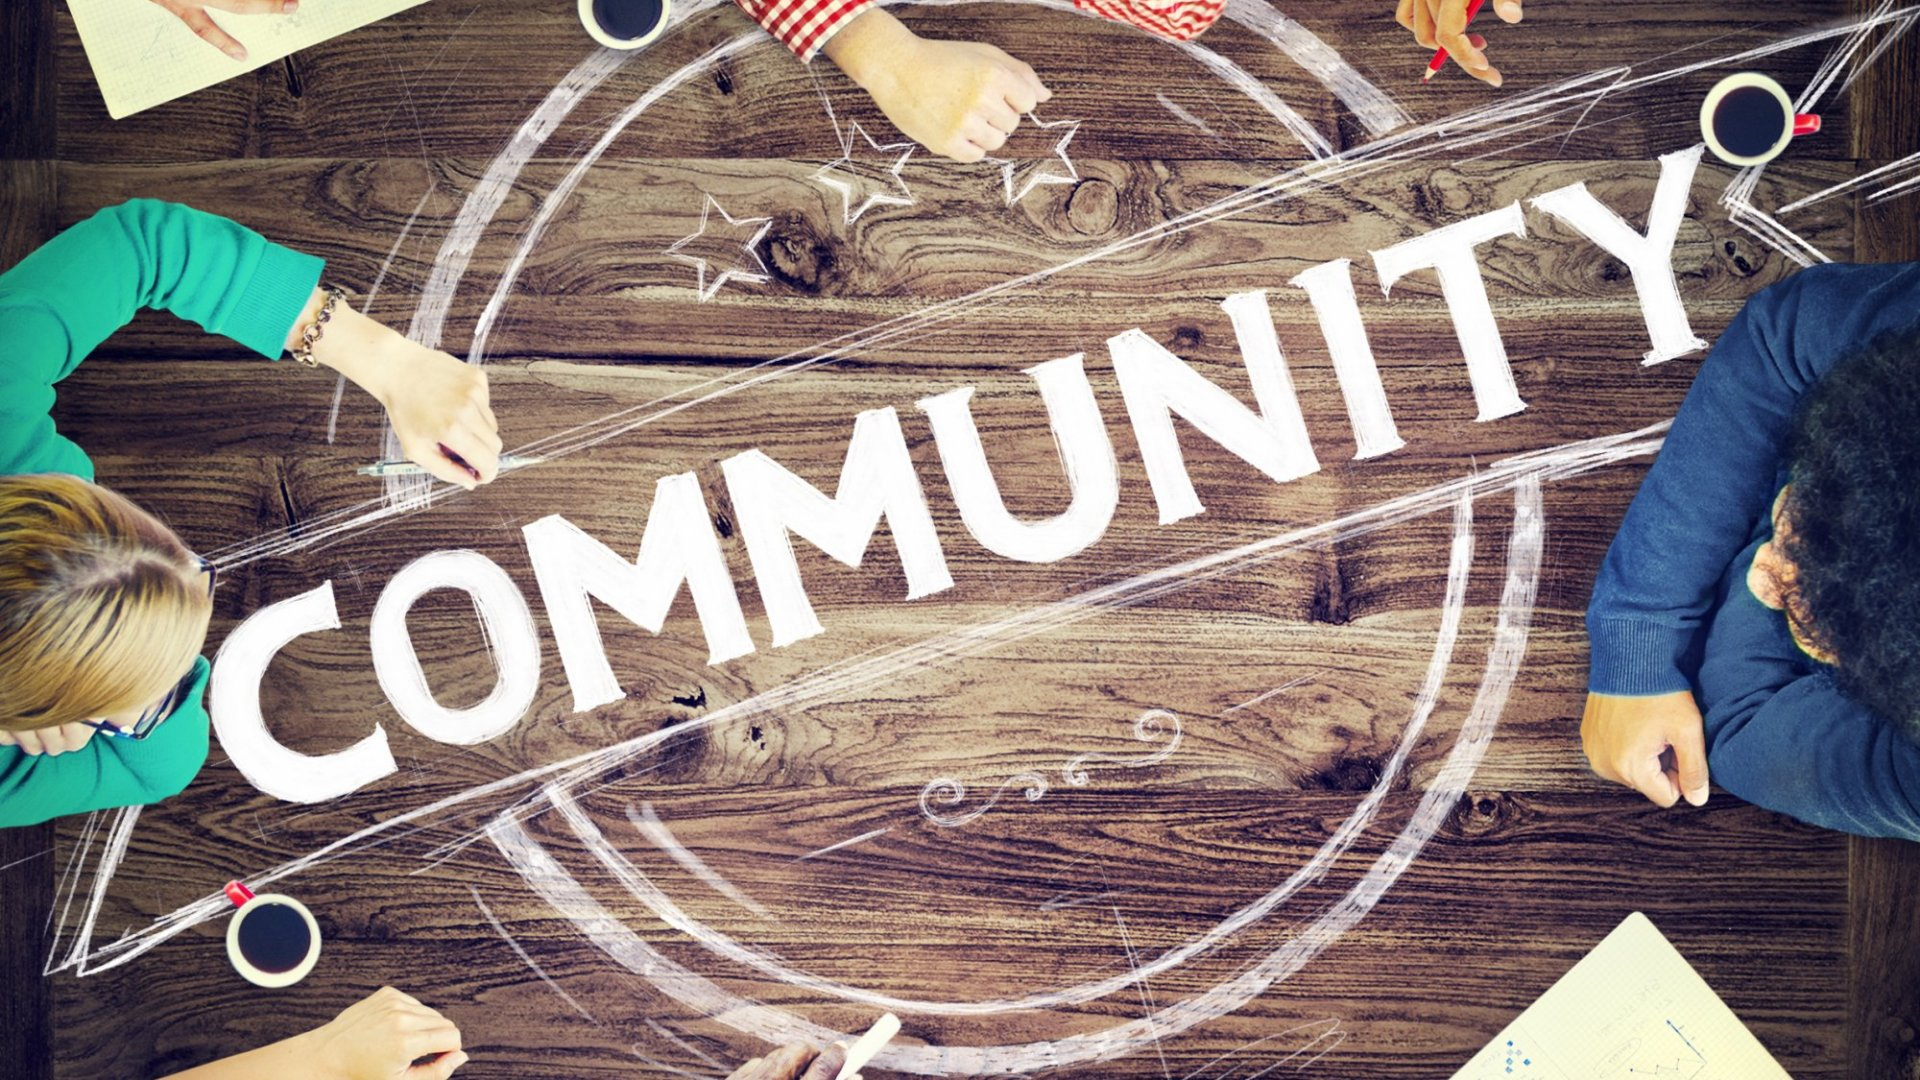 What's the Best Way to Serve a Community and Make Money at the Same Time?